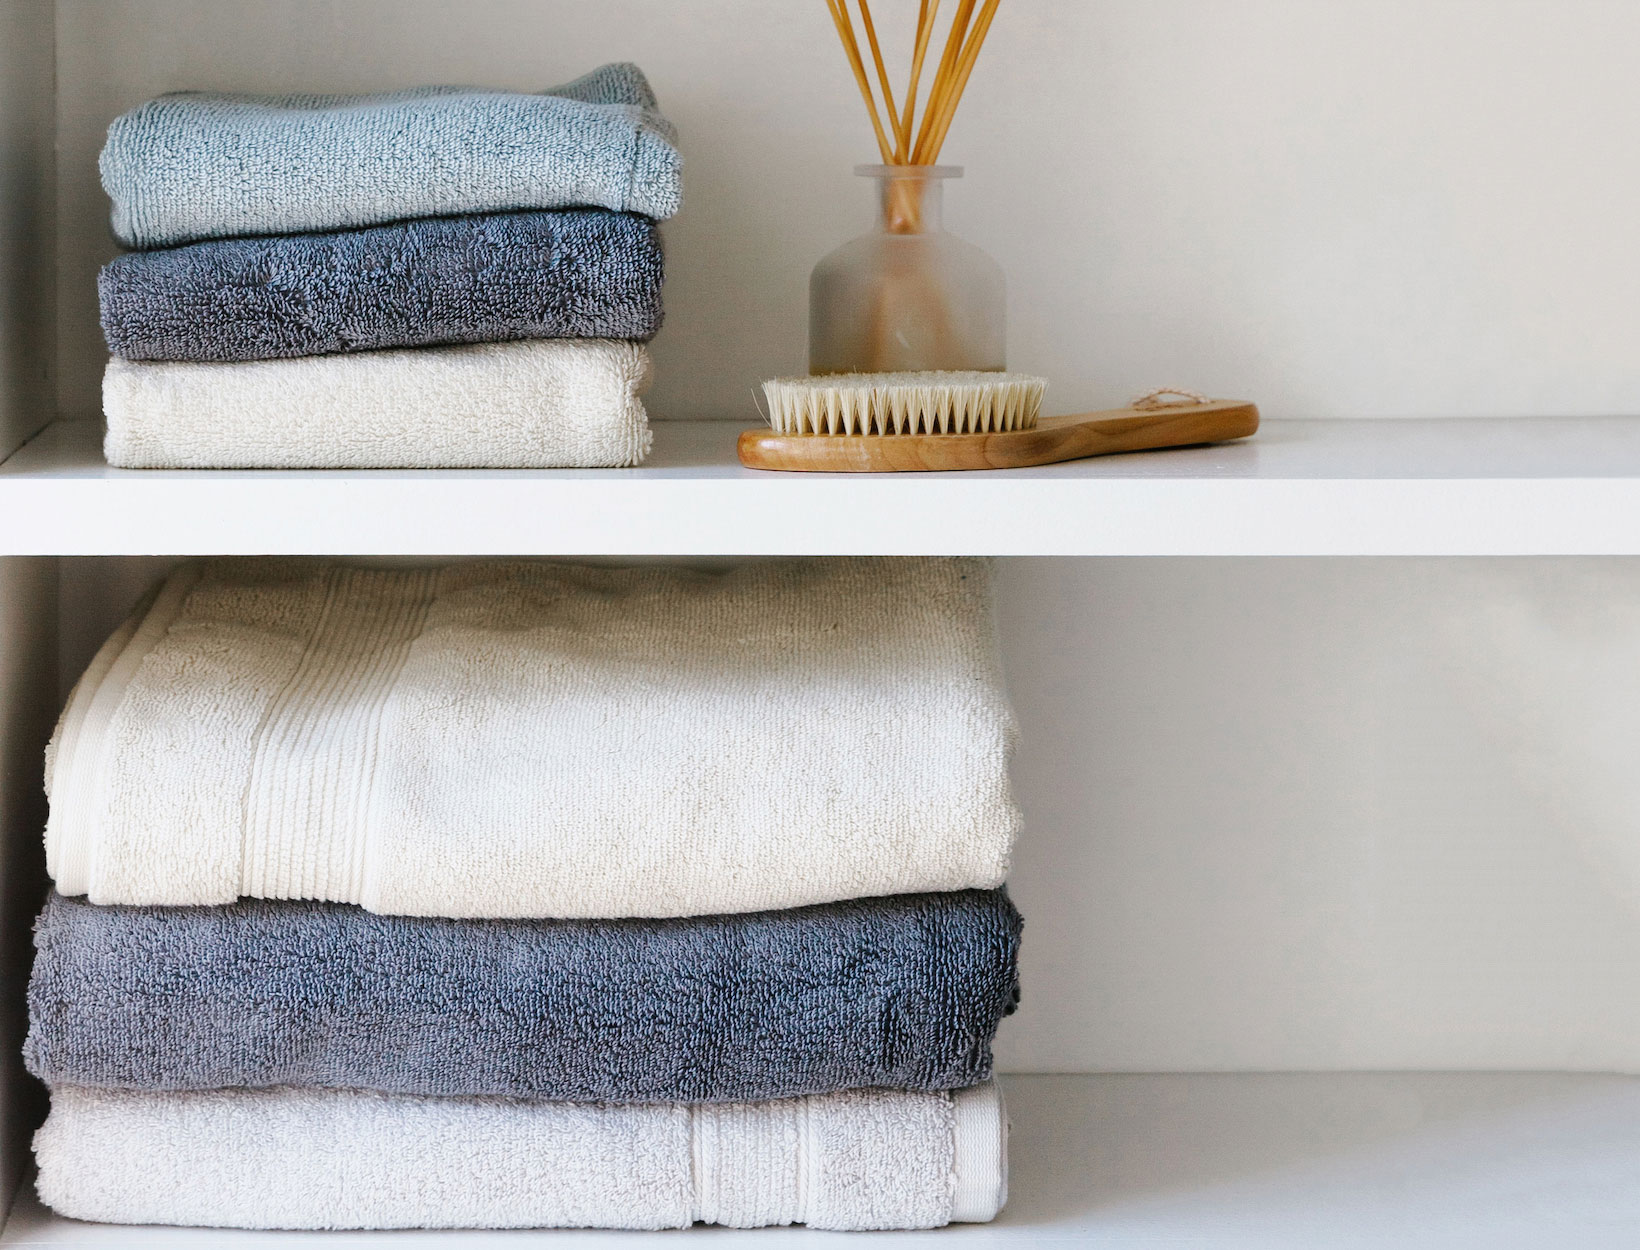 A State-of-the-Art Refresh for the Laundry Room